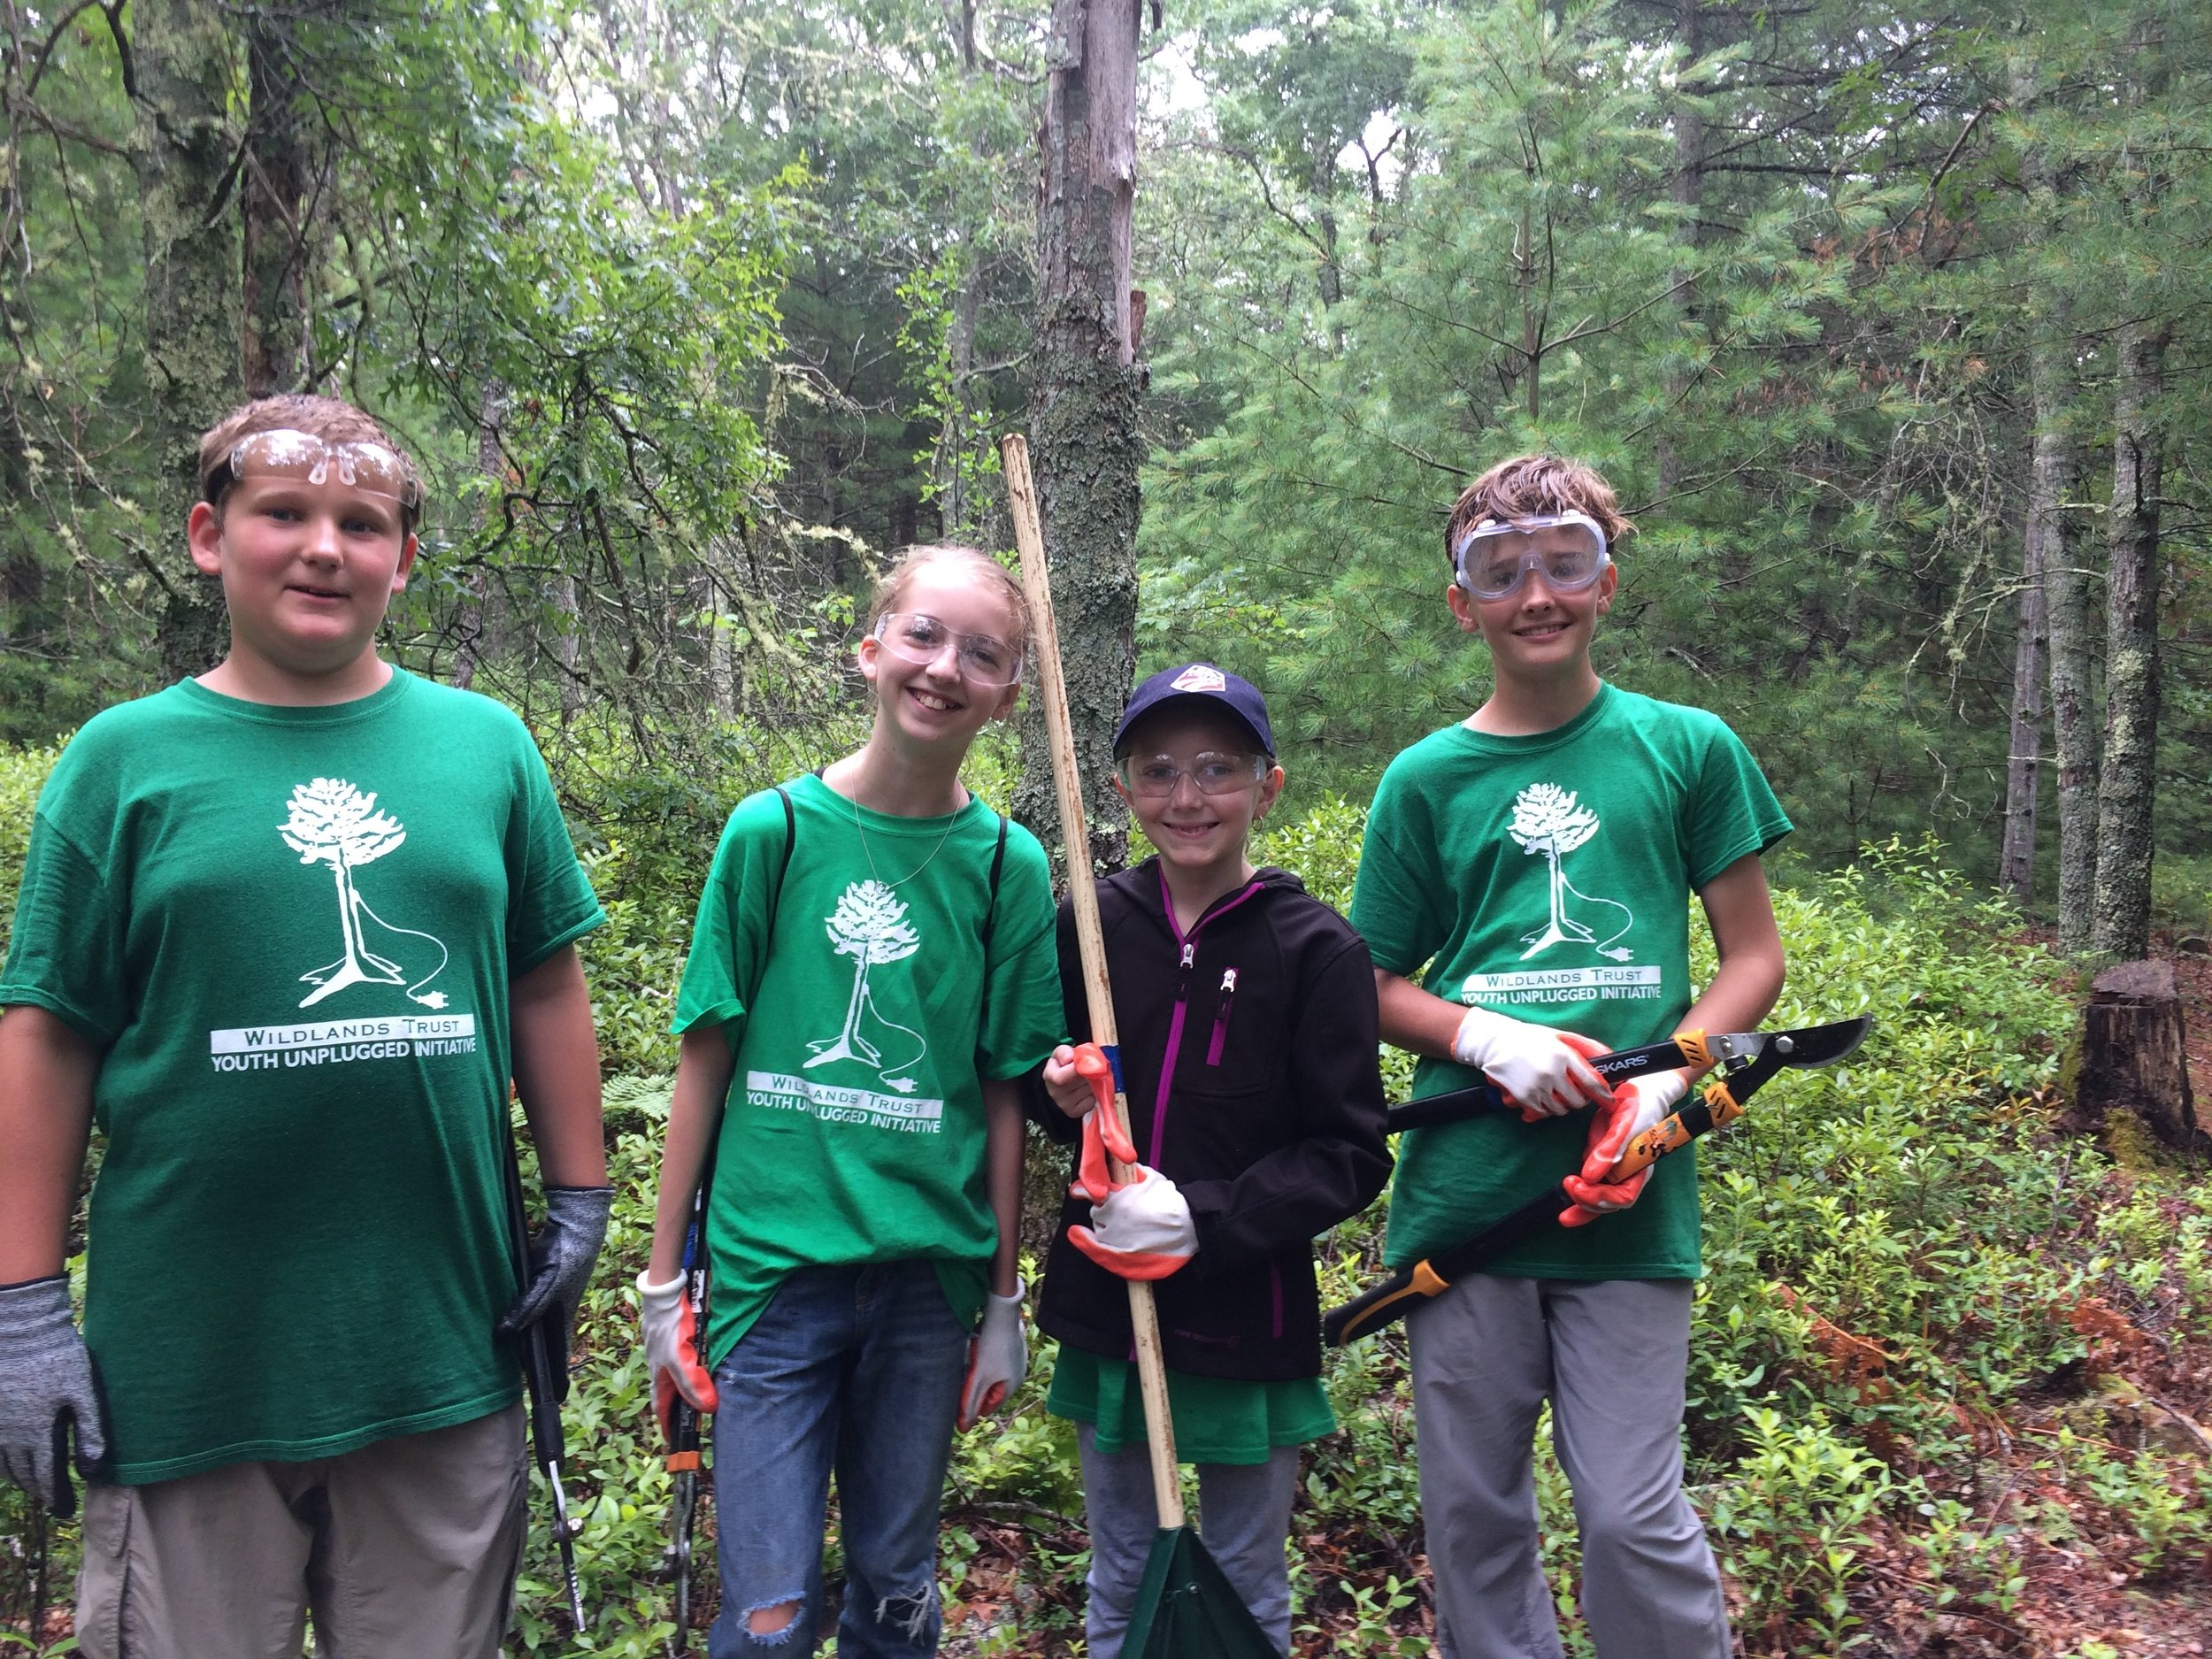 Day One: Trail cutting at Pickerel Pond Preserve and Emery Preserve, Plymouth